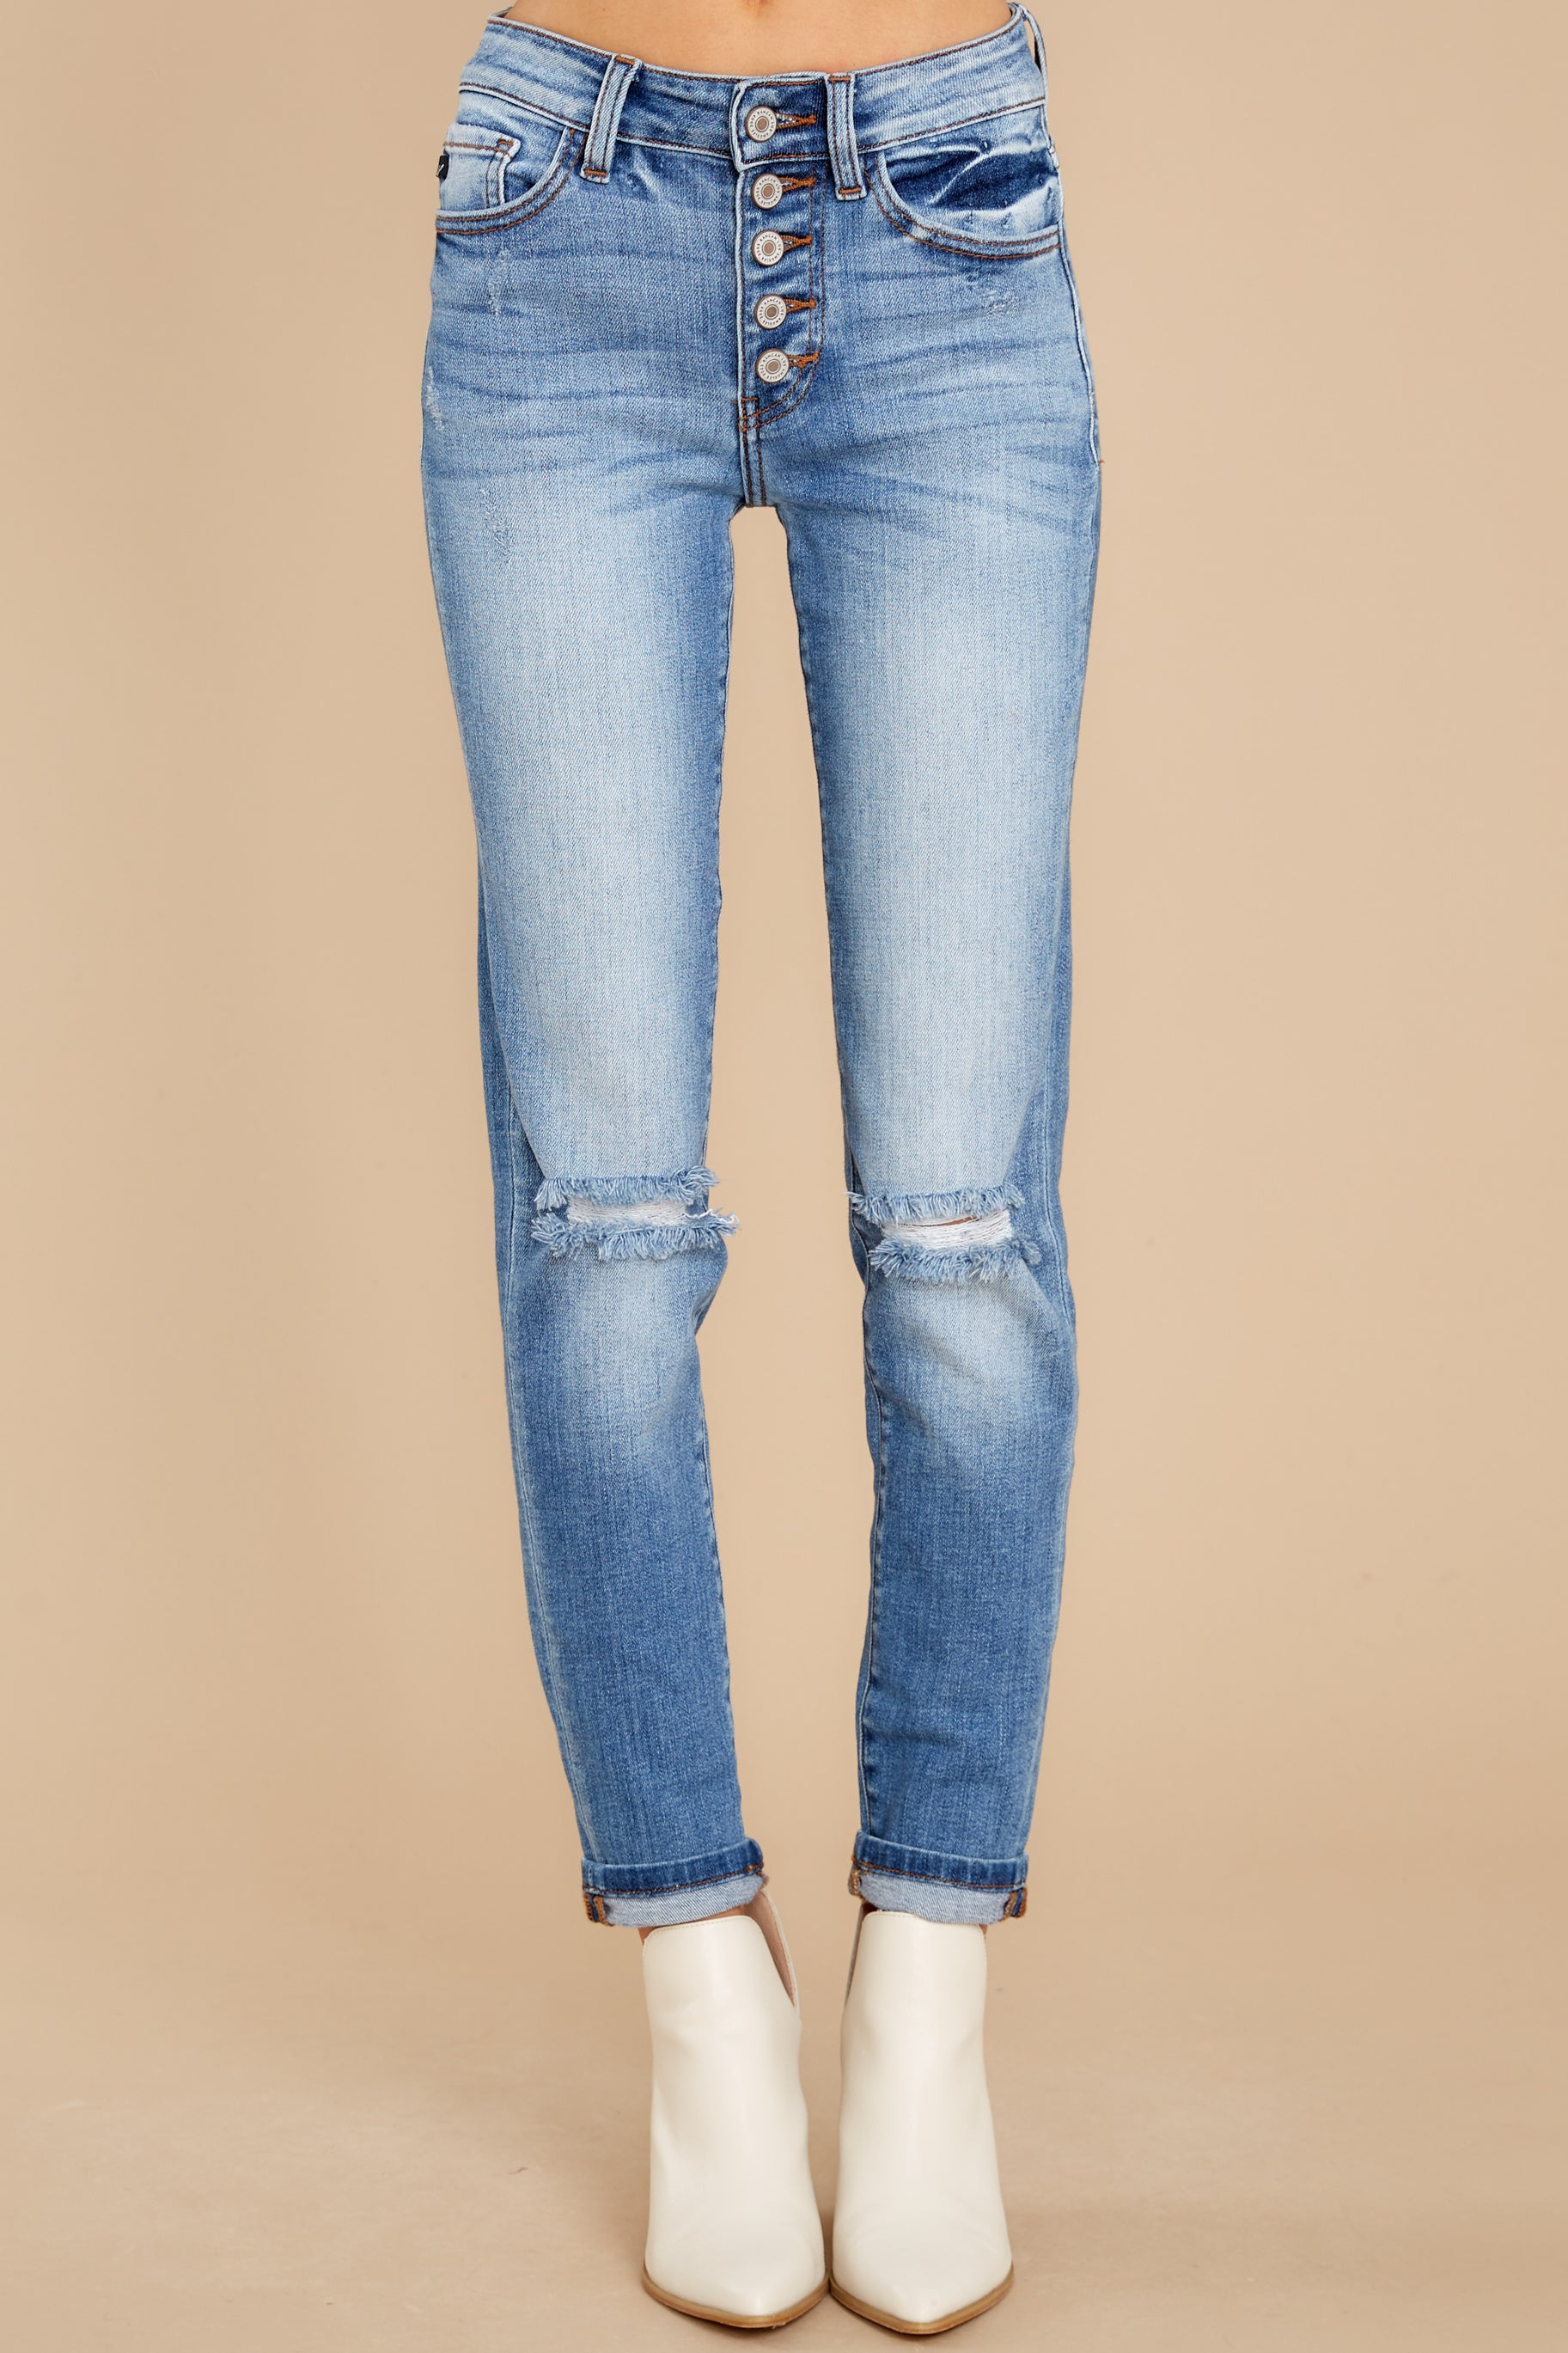 4 Look This Way Light Wash Distressed Skinny Jeans at reddress.com